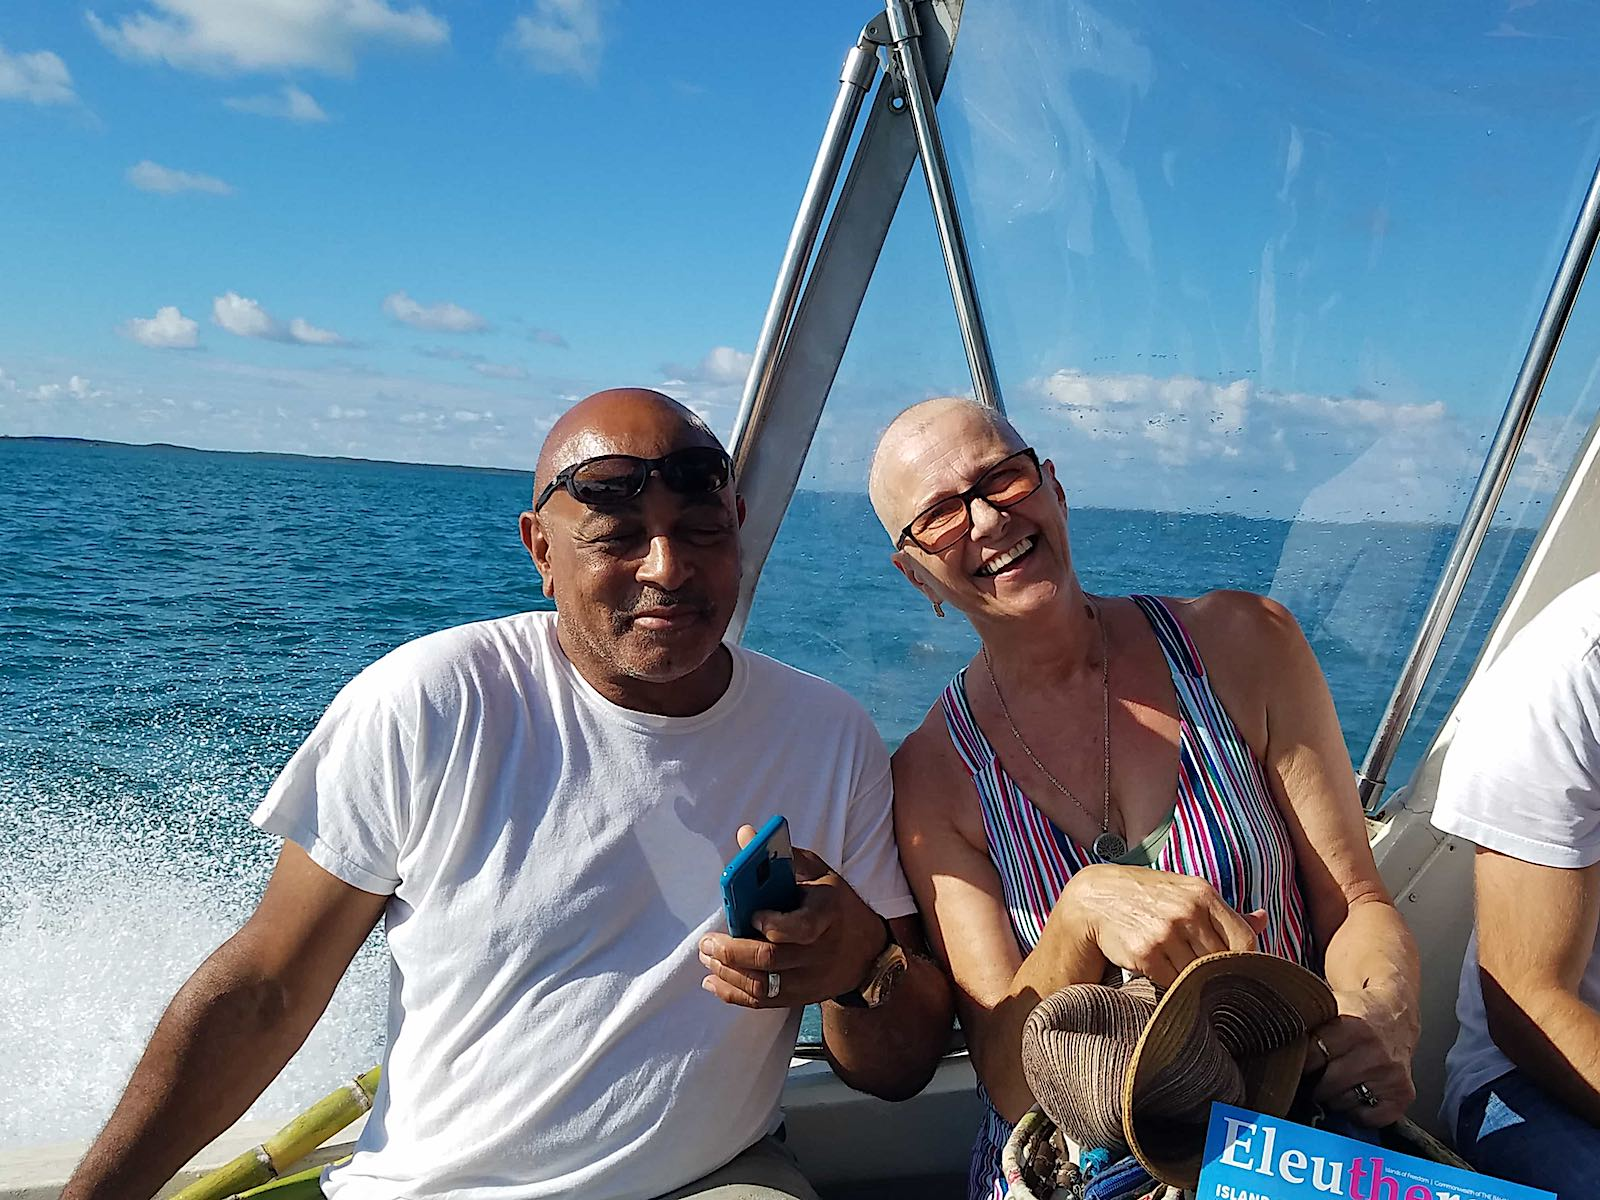 gail and a man smiling on a boat